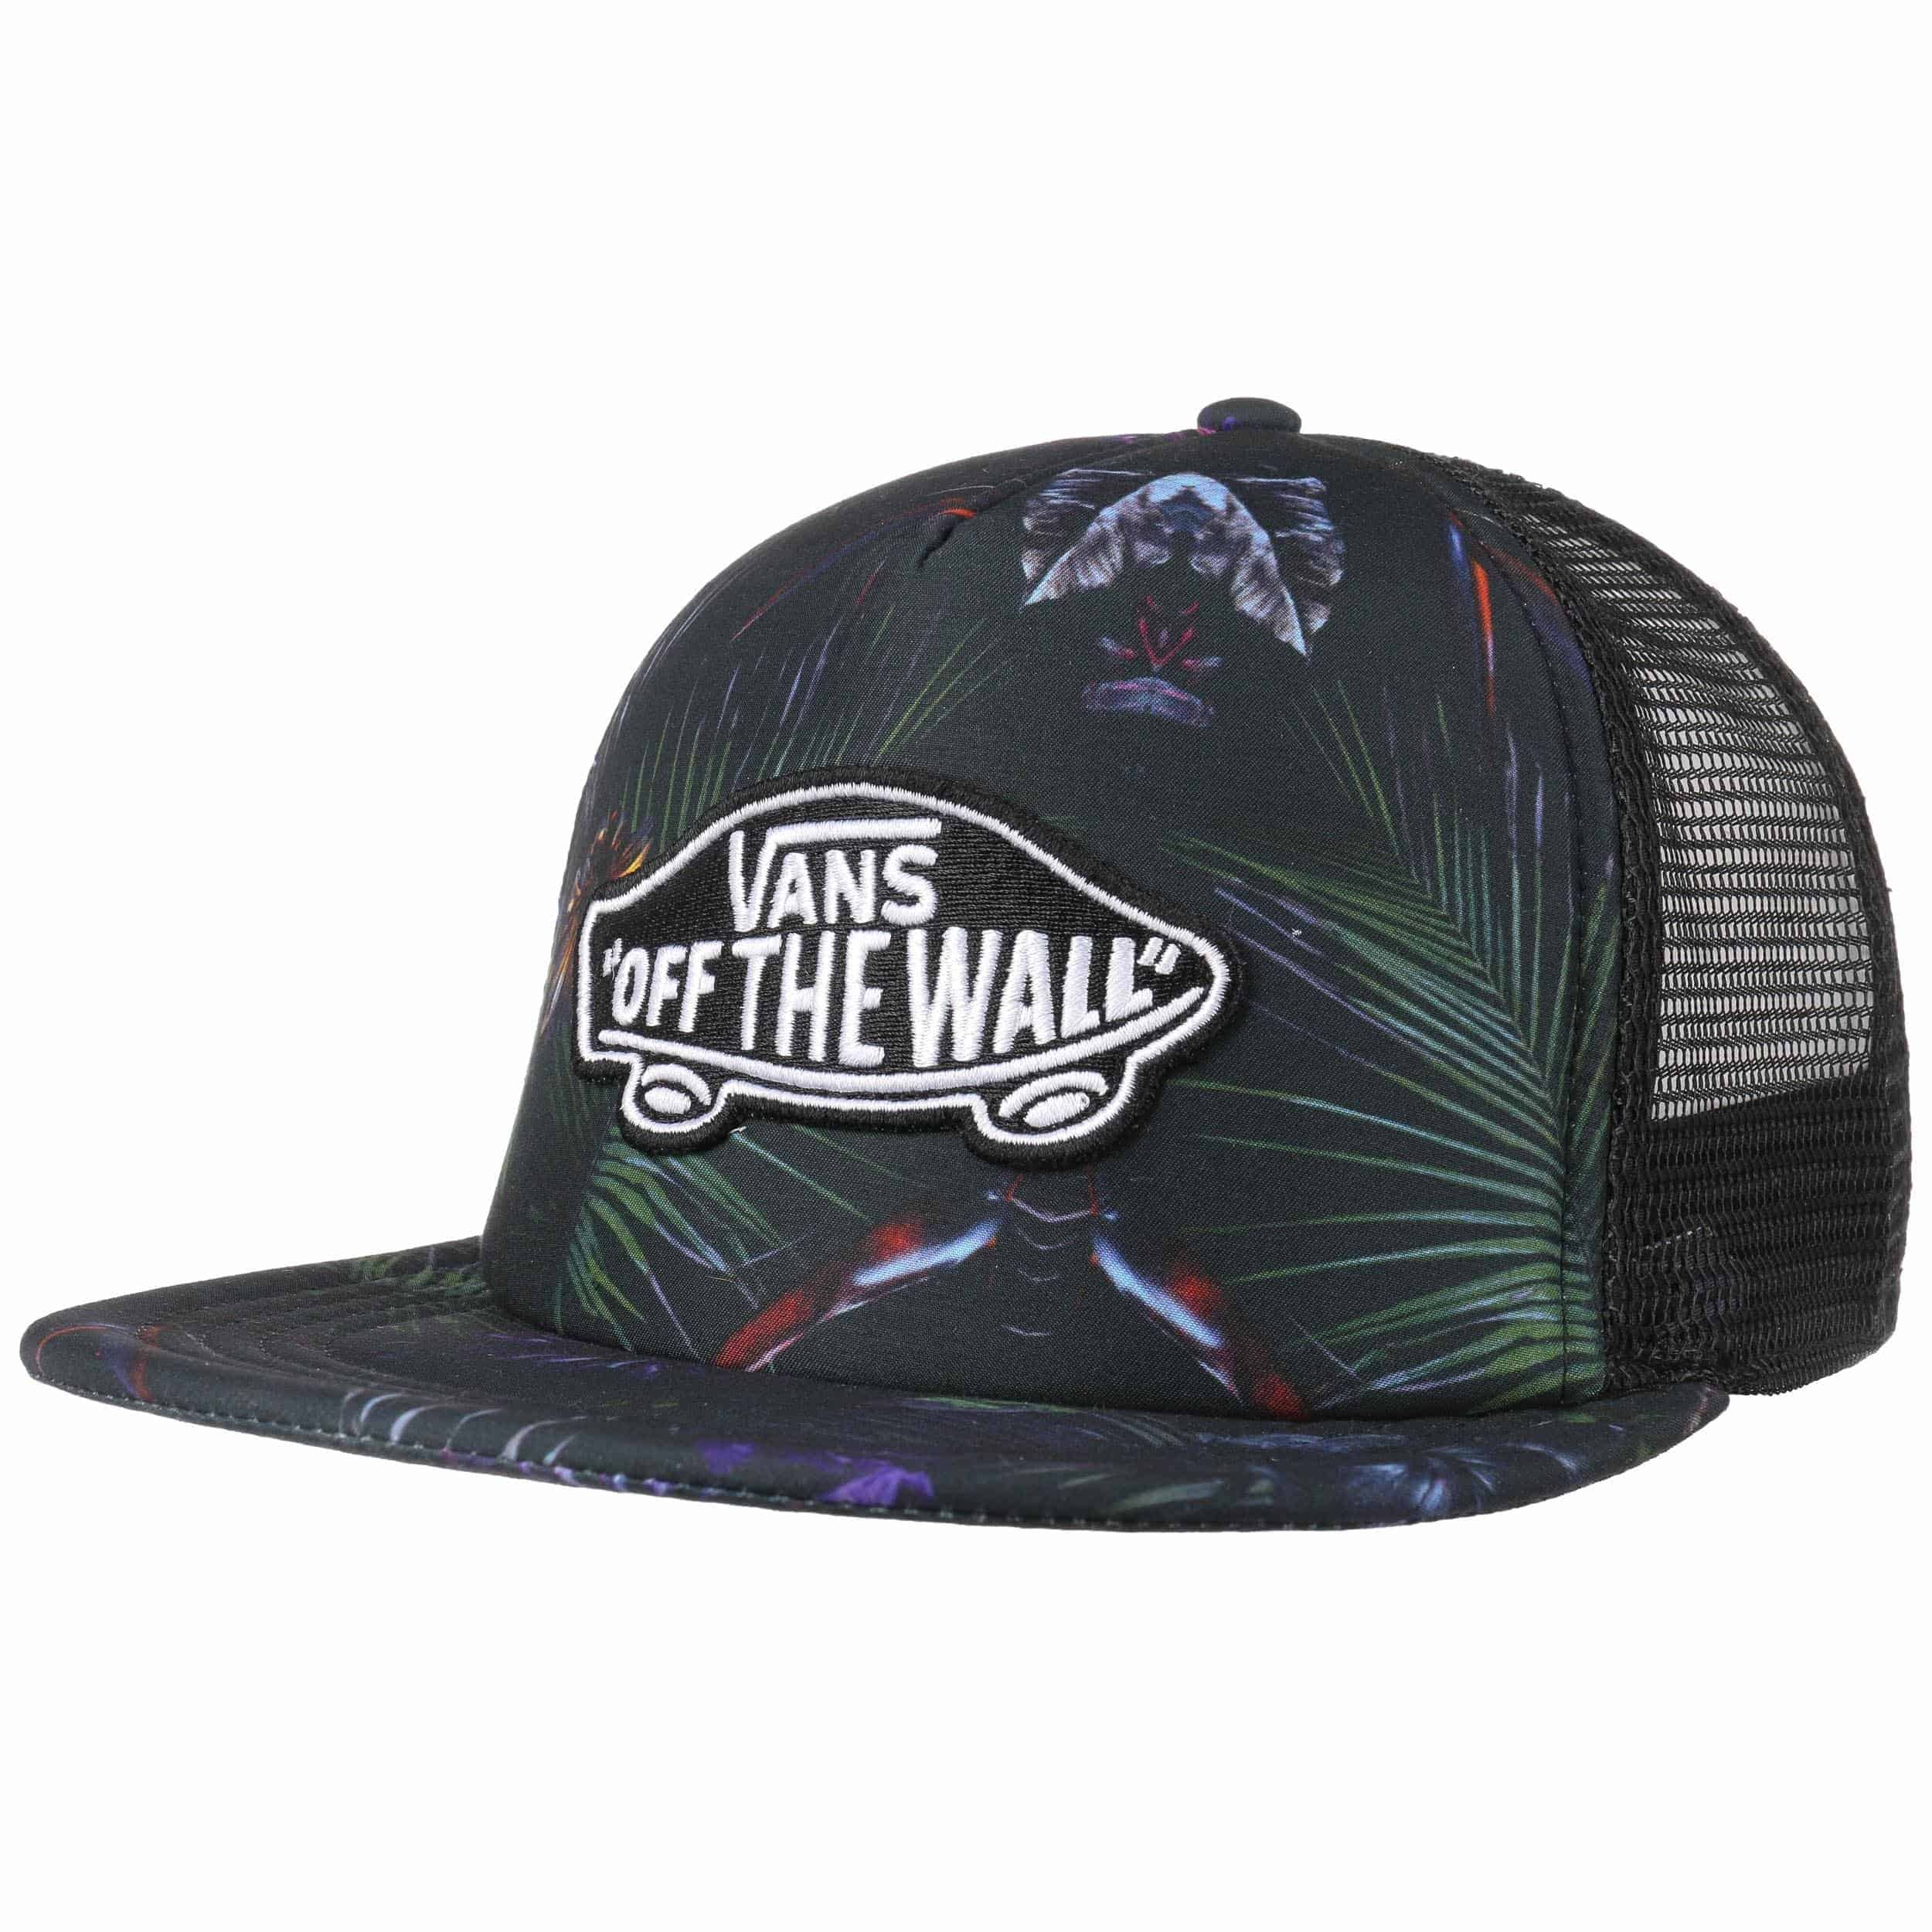 classic patch jungle trucker cap by vans 37 95 chf. Black Bedroom Furniture Sets. Home Design Ideas